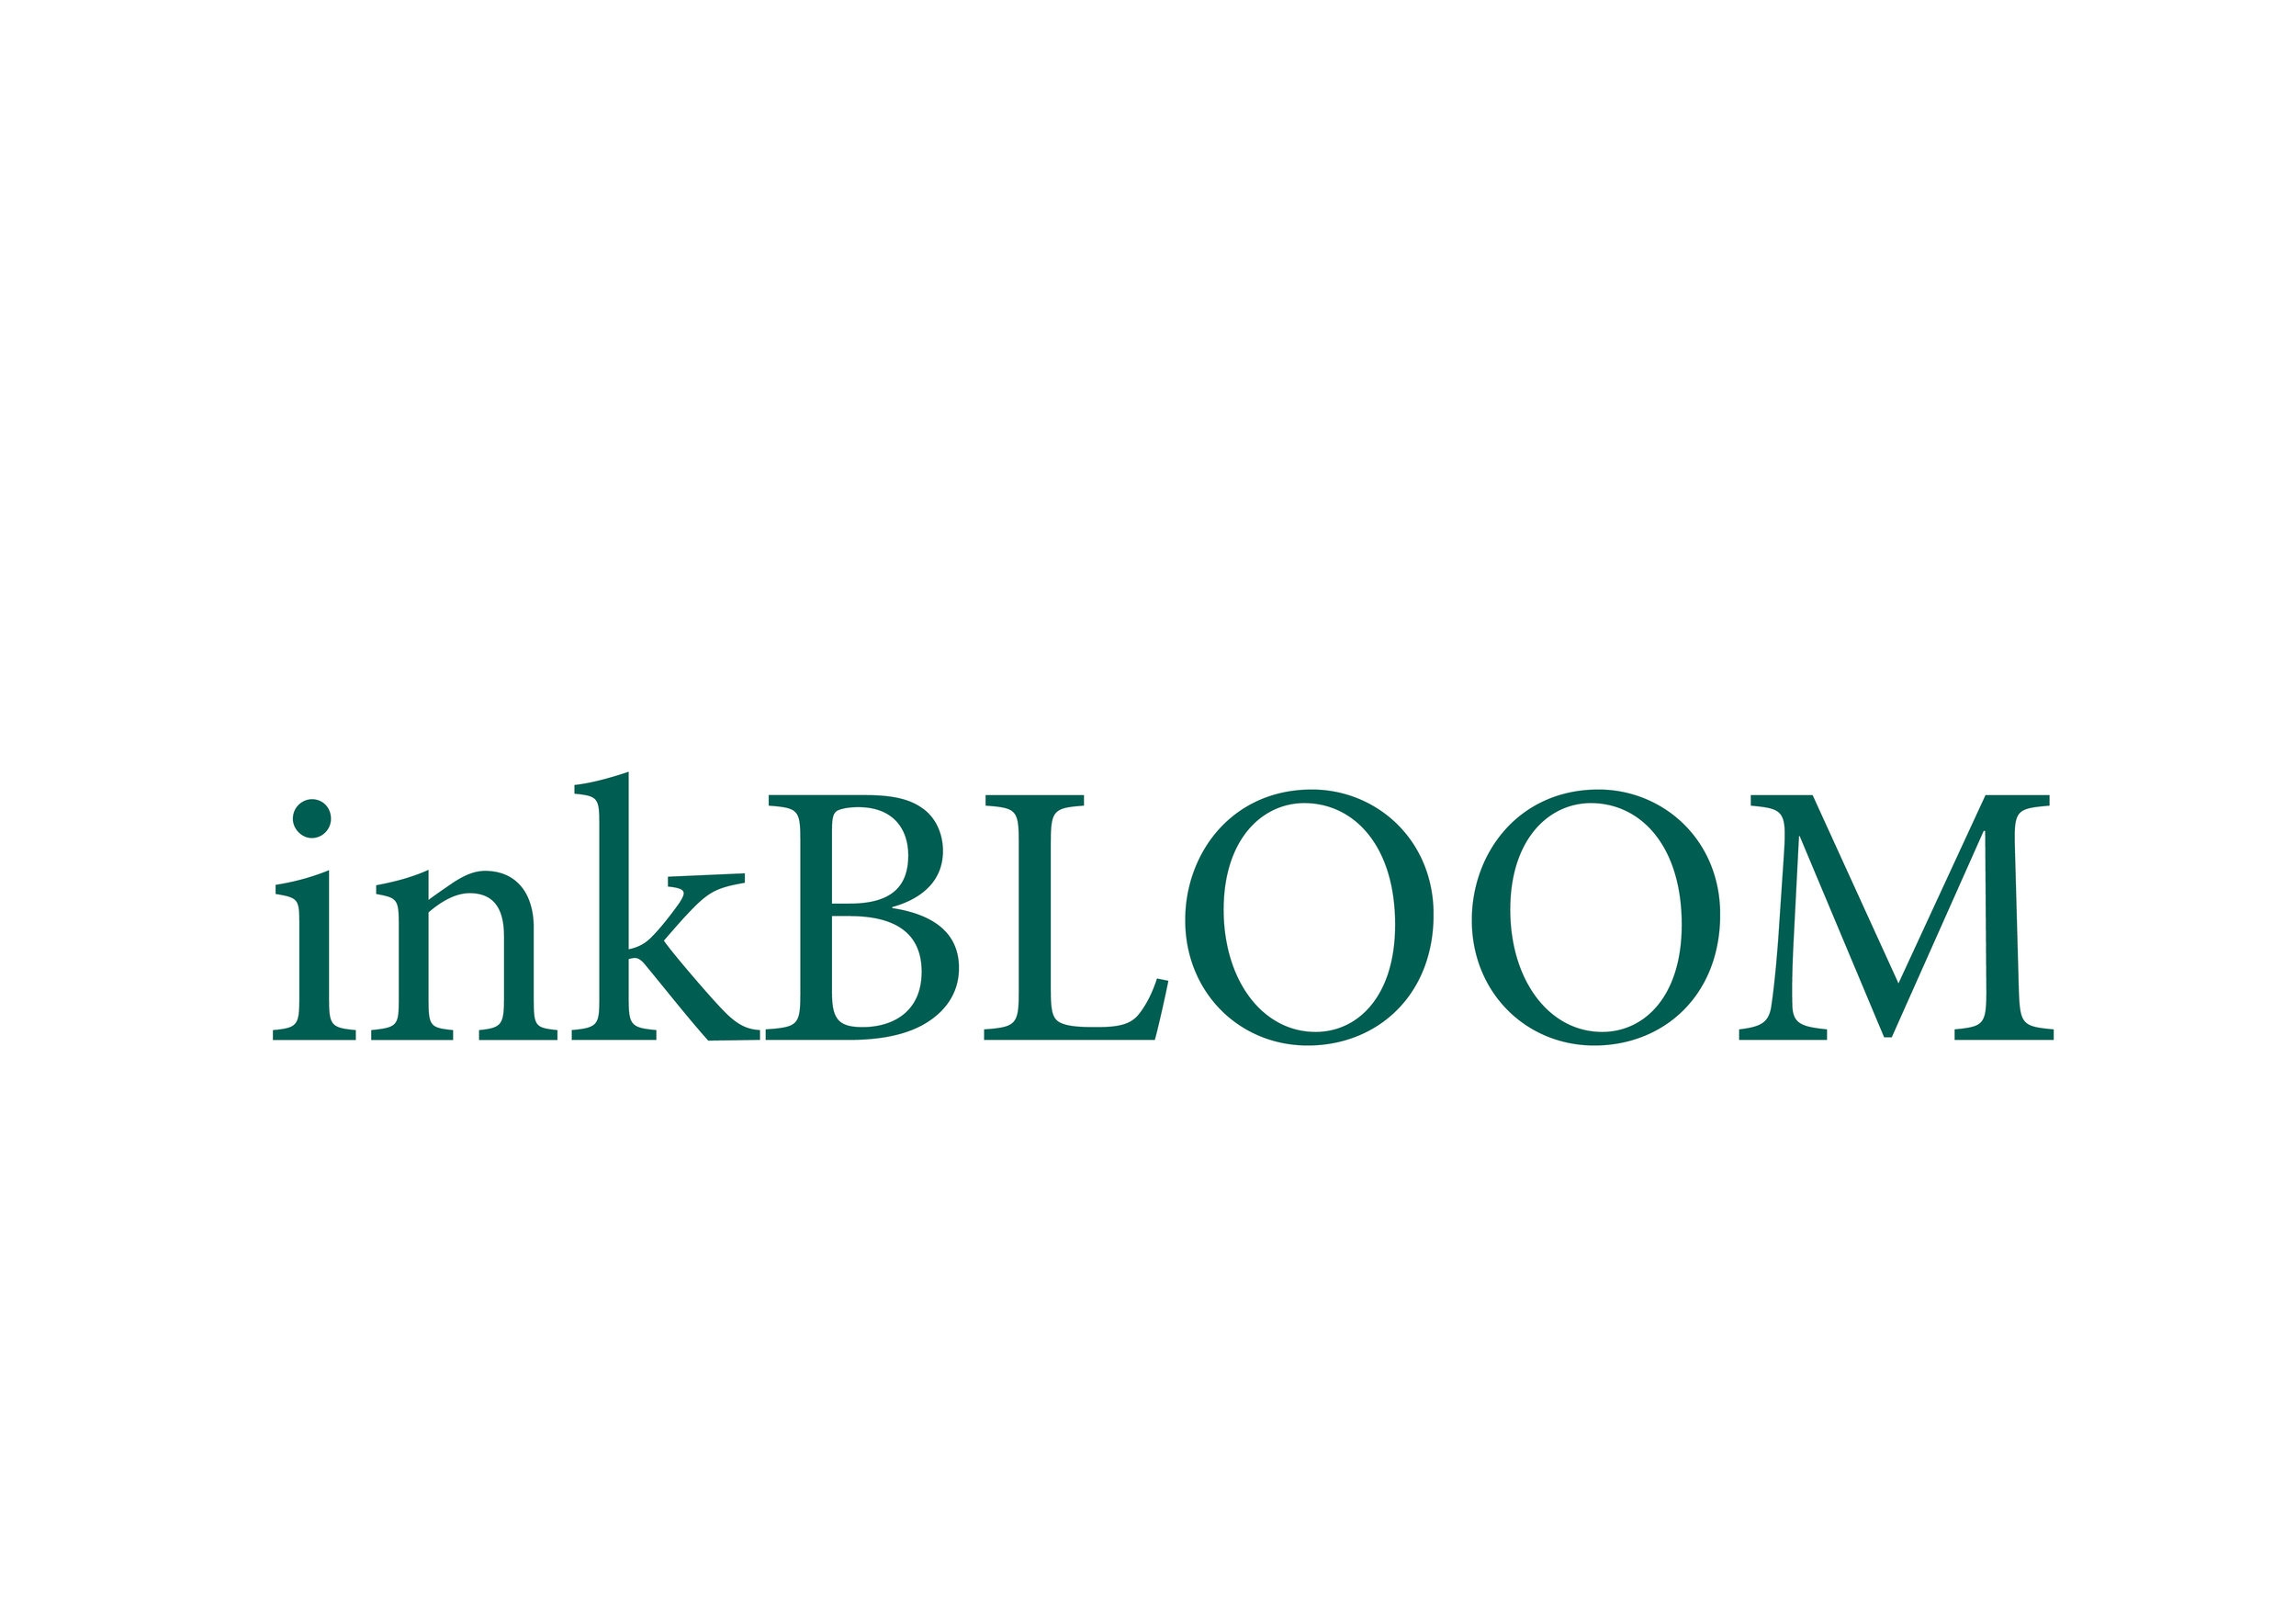 temporary ink bloom Logo.jpg